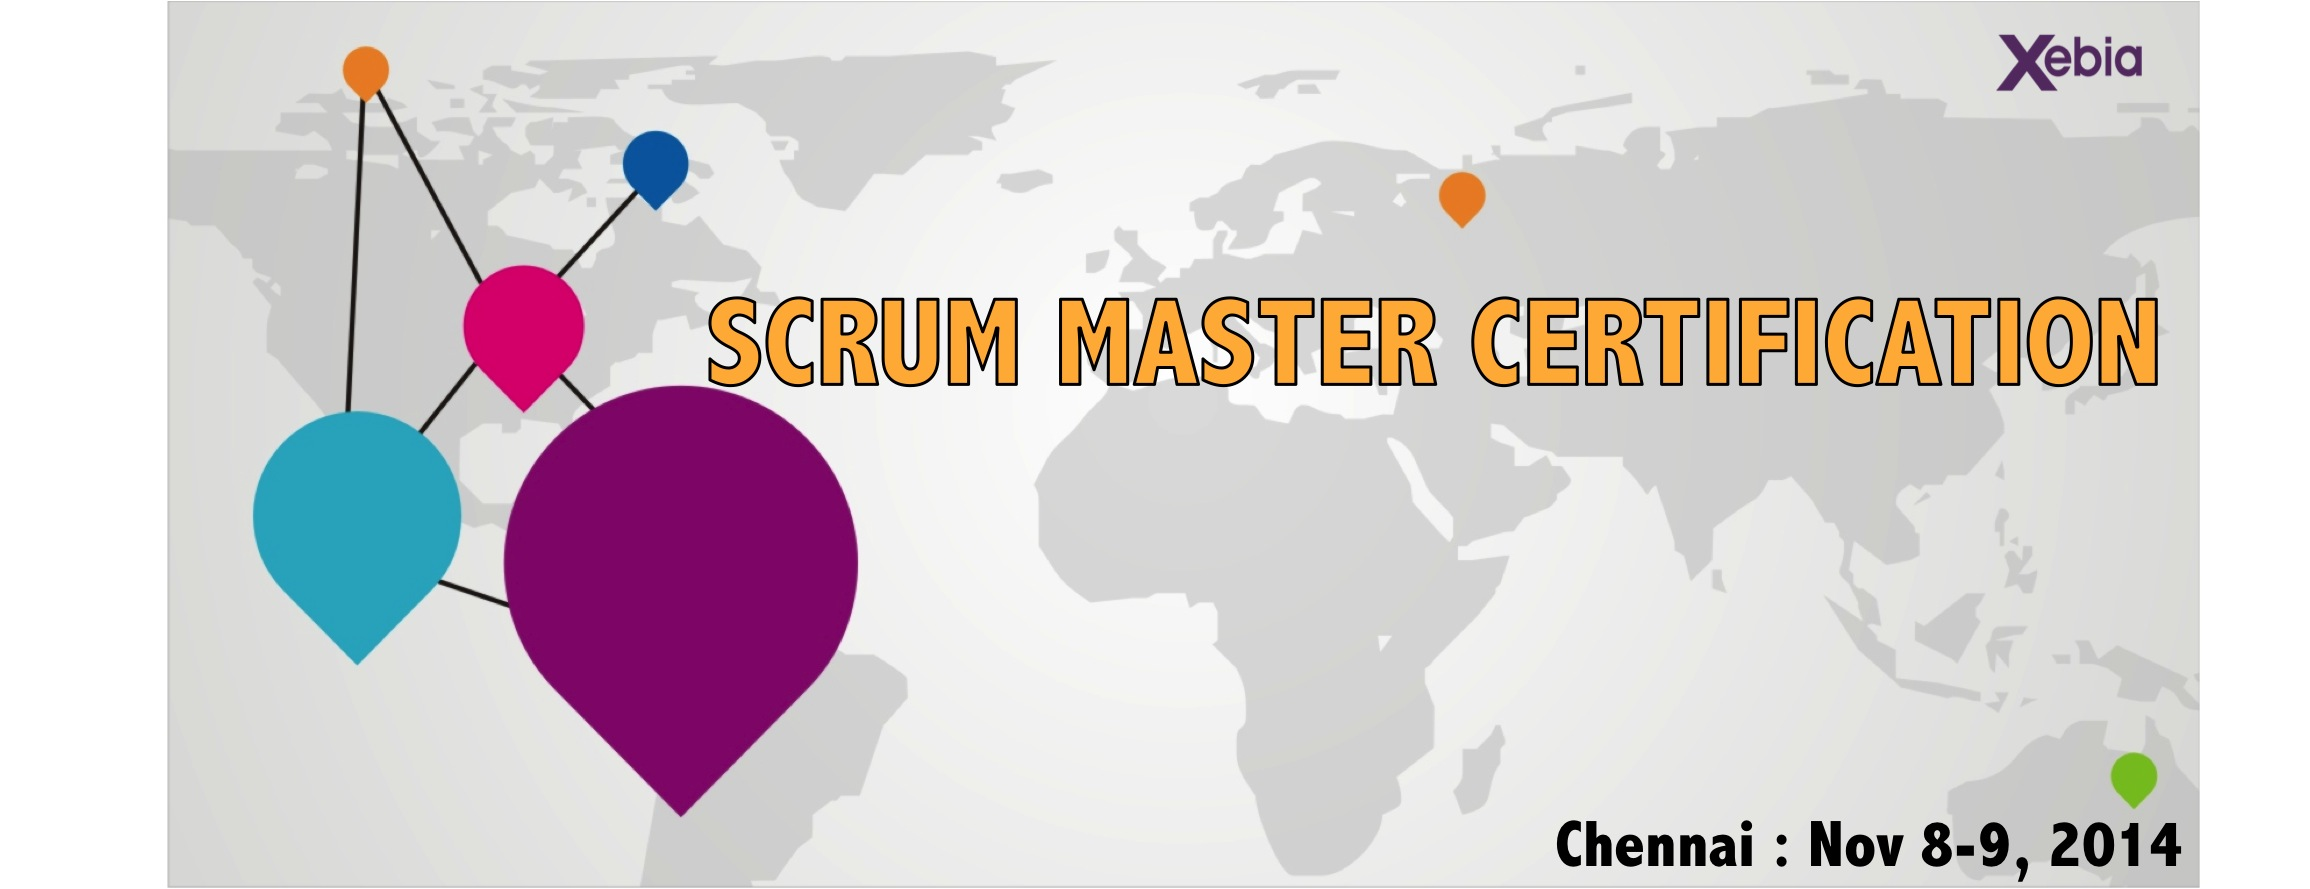 Book Online Tickets for Scrum Master Certification  (CSM) - Chen, Chennai. All Scrum Master Certification(CSM) courses are taught by Certified Scrum Trainers. Attending a Scrum Master Certification Training , passing the CSM test, and accepting the license agreement designates you as a Certified Scrum Master, which in